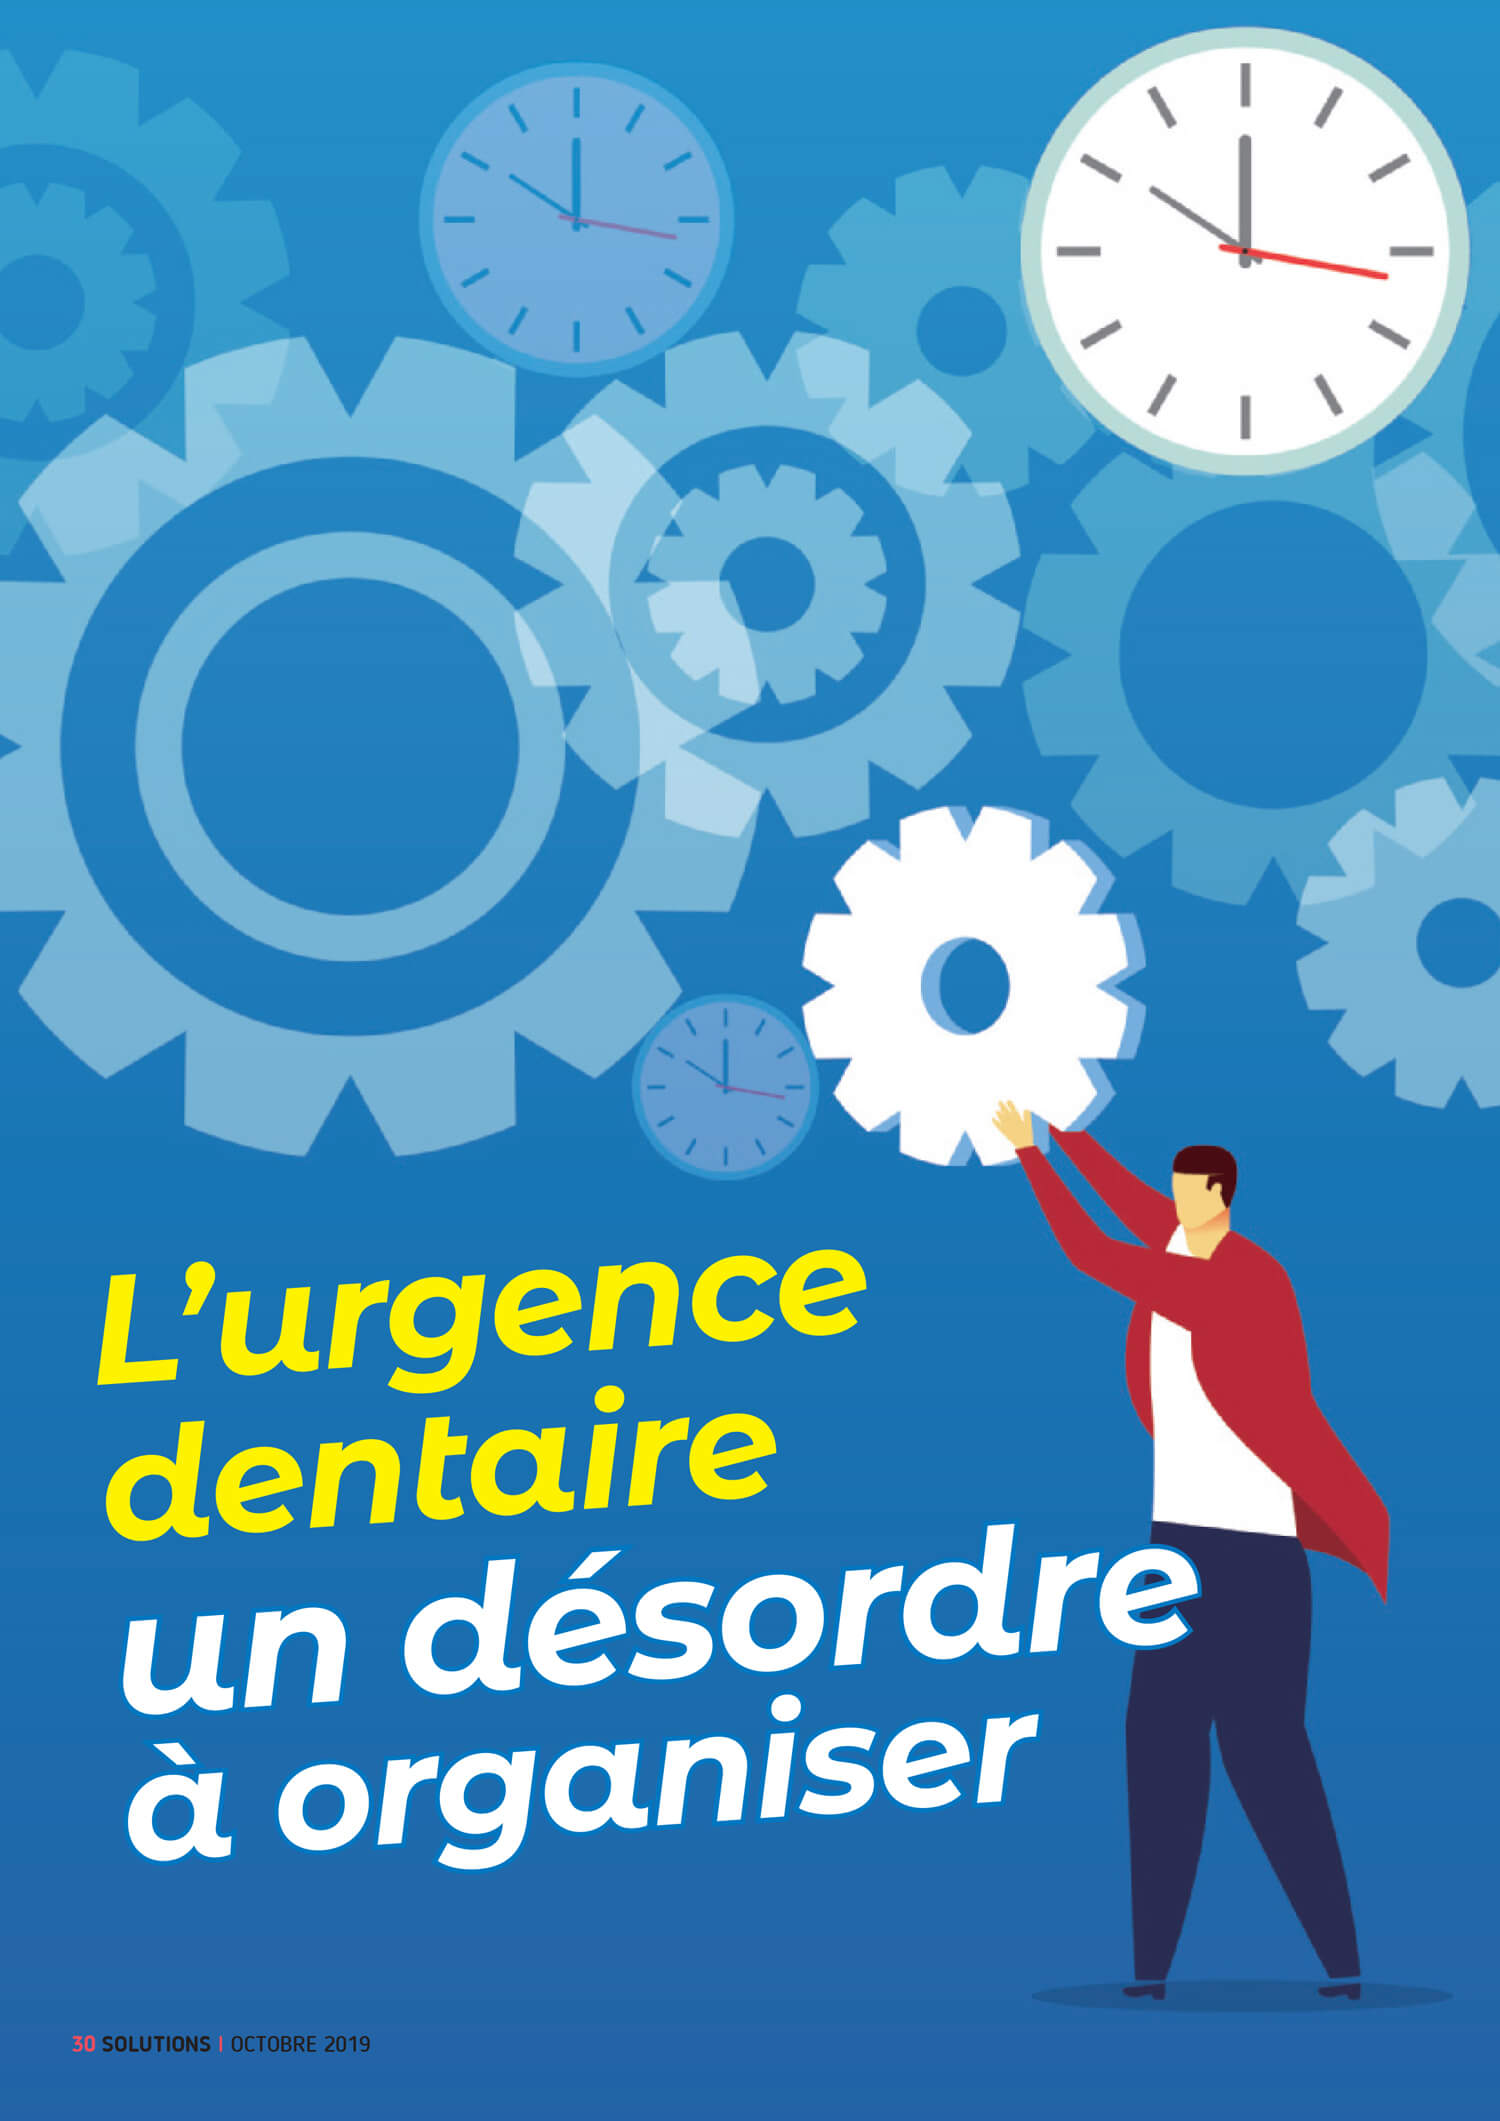 urgence-dentaire-desordre-a-organiser-solutions-cabinet-dentaire-rodolphe-cochet-coaching.jpg